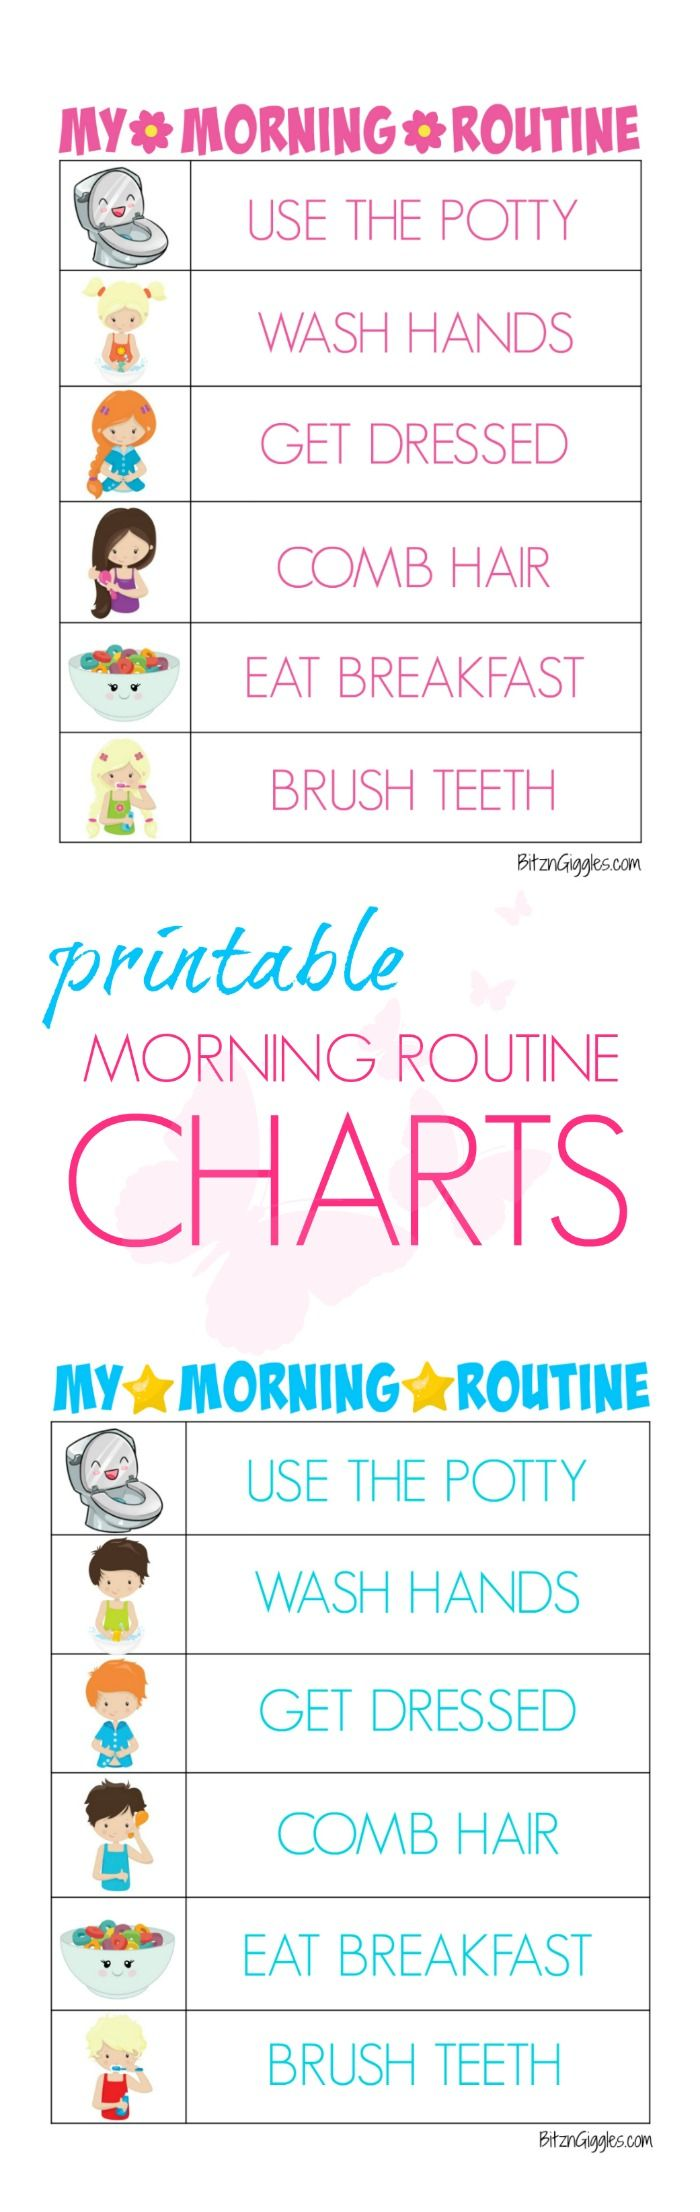 Printable Morning Routine Charts - Free printable kids morning routine charts to help teach kids independence and provide guidance for their morning routine! Charts for boys and girls!